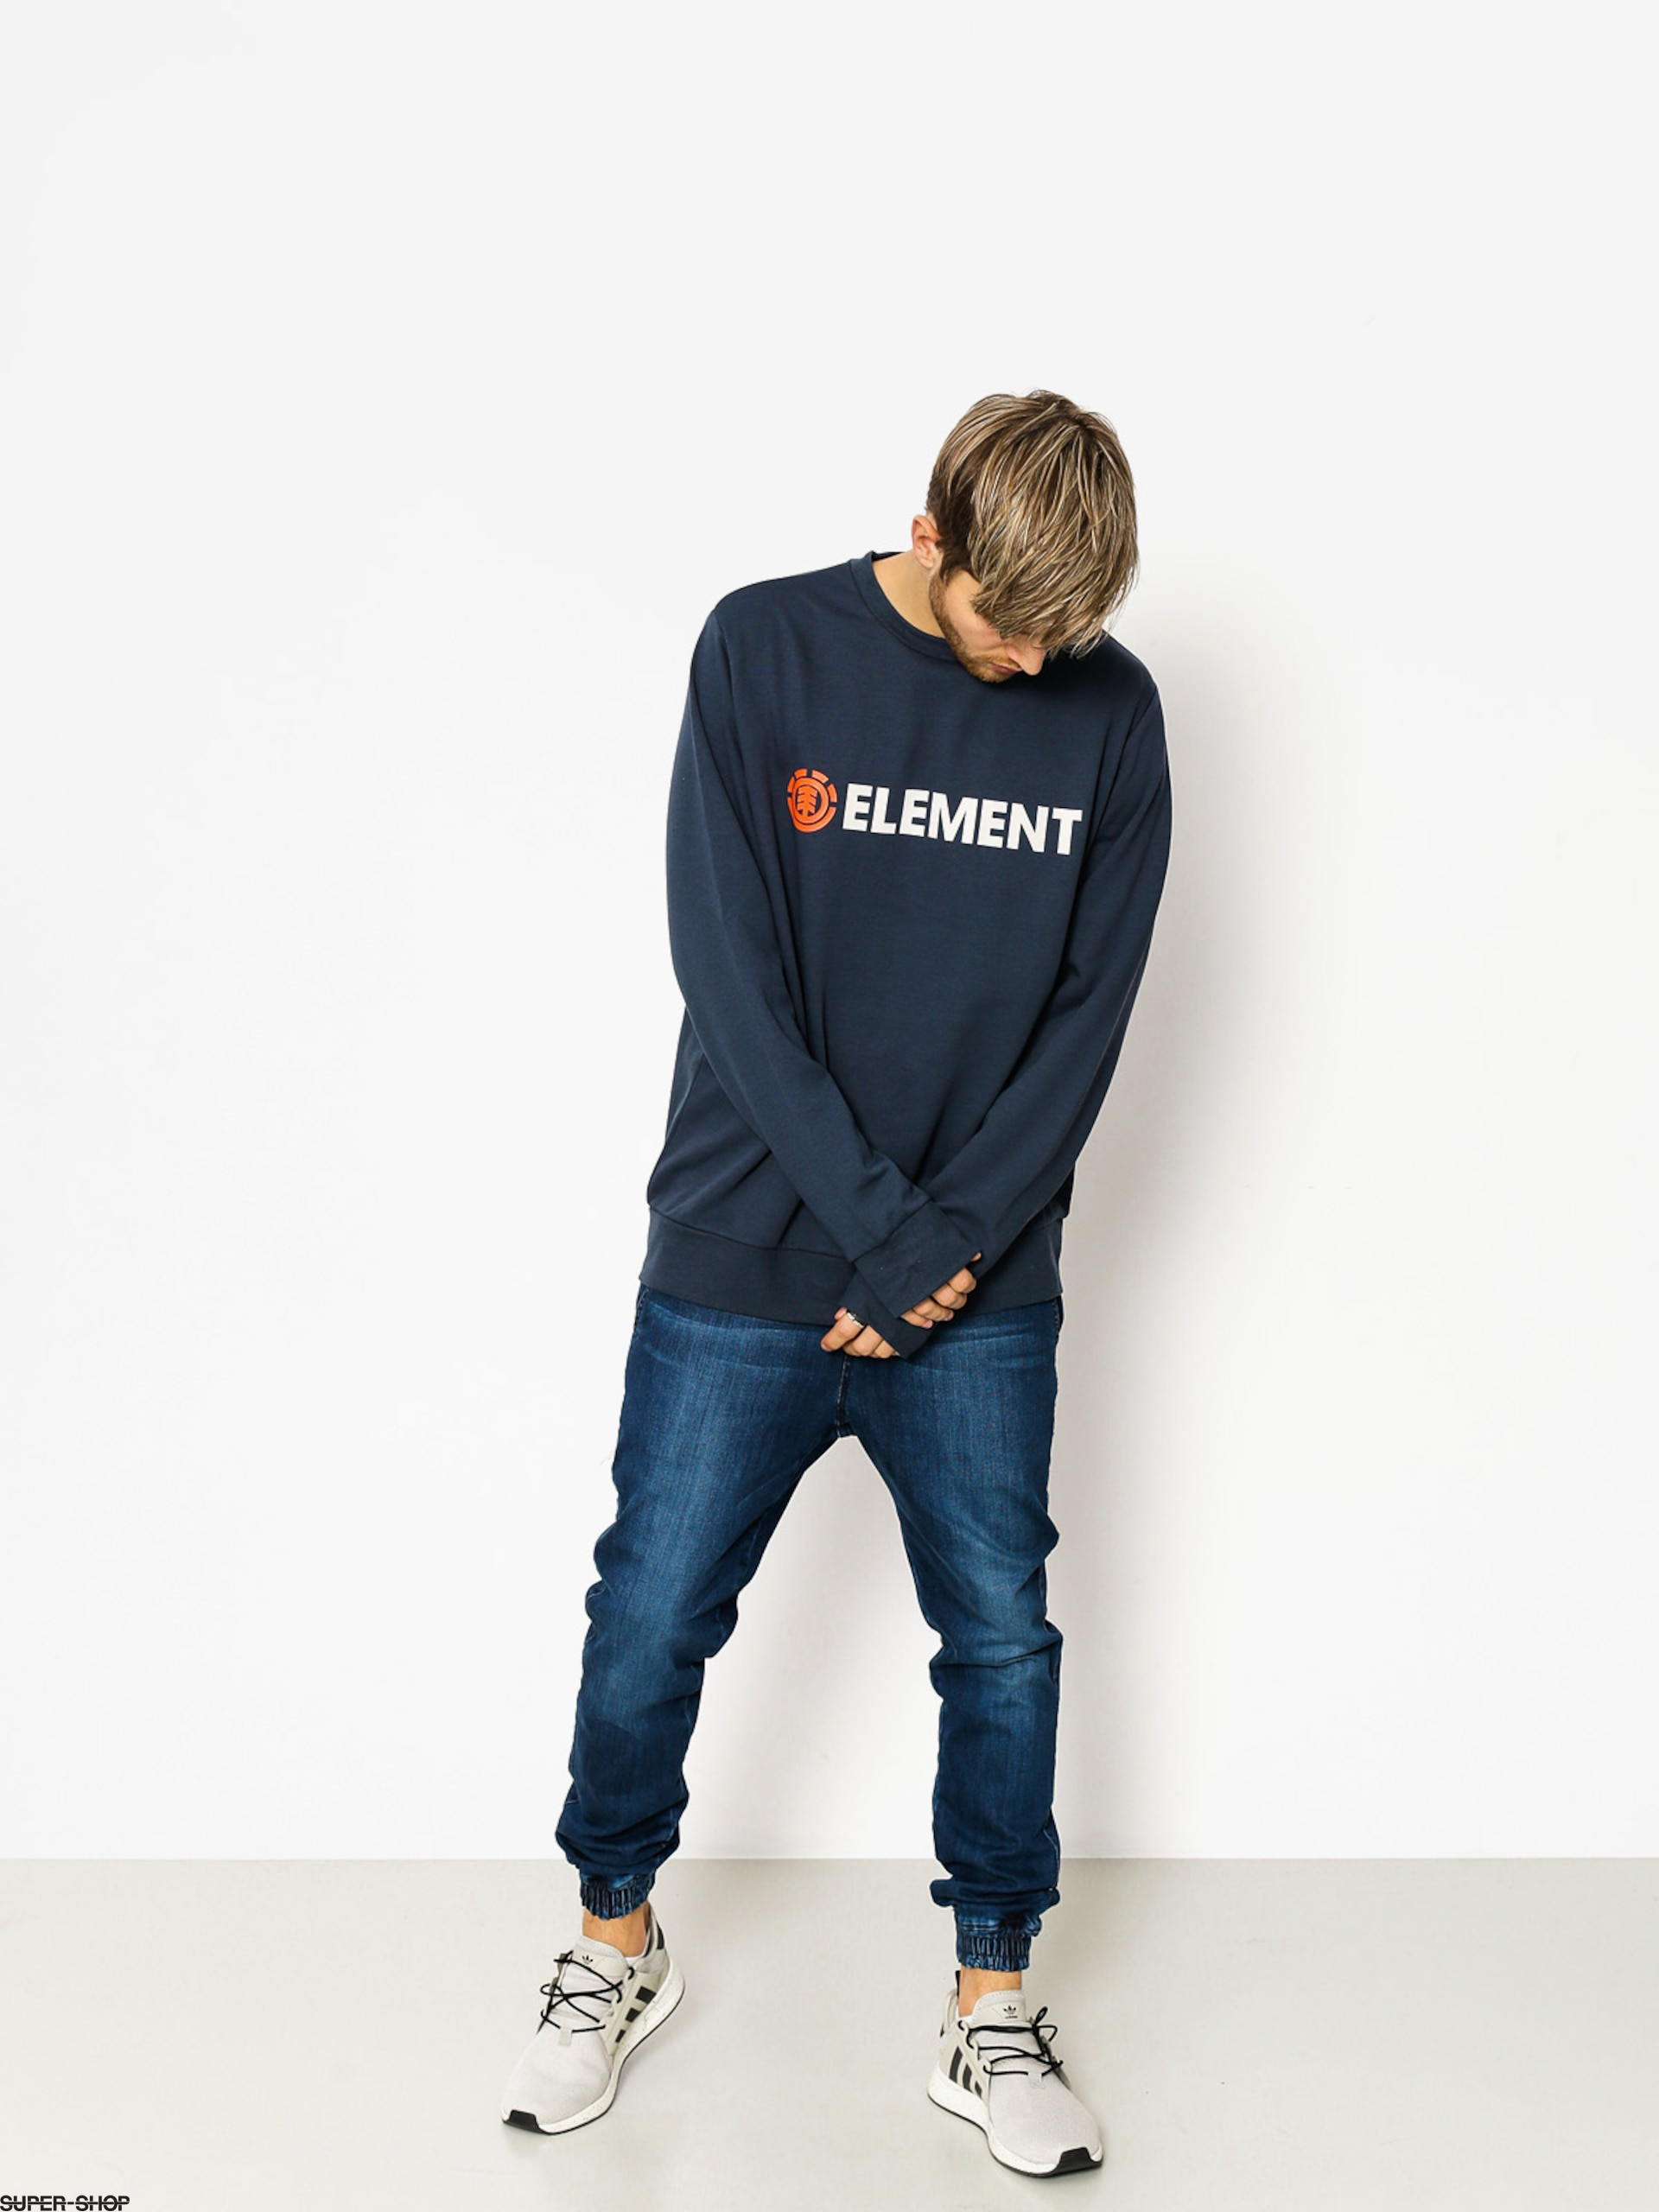 Element Sweatshirt Blazin Crew